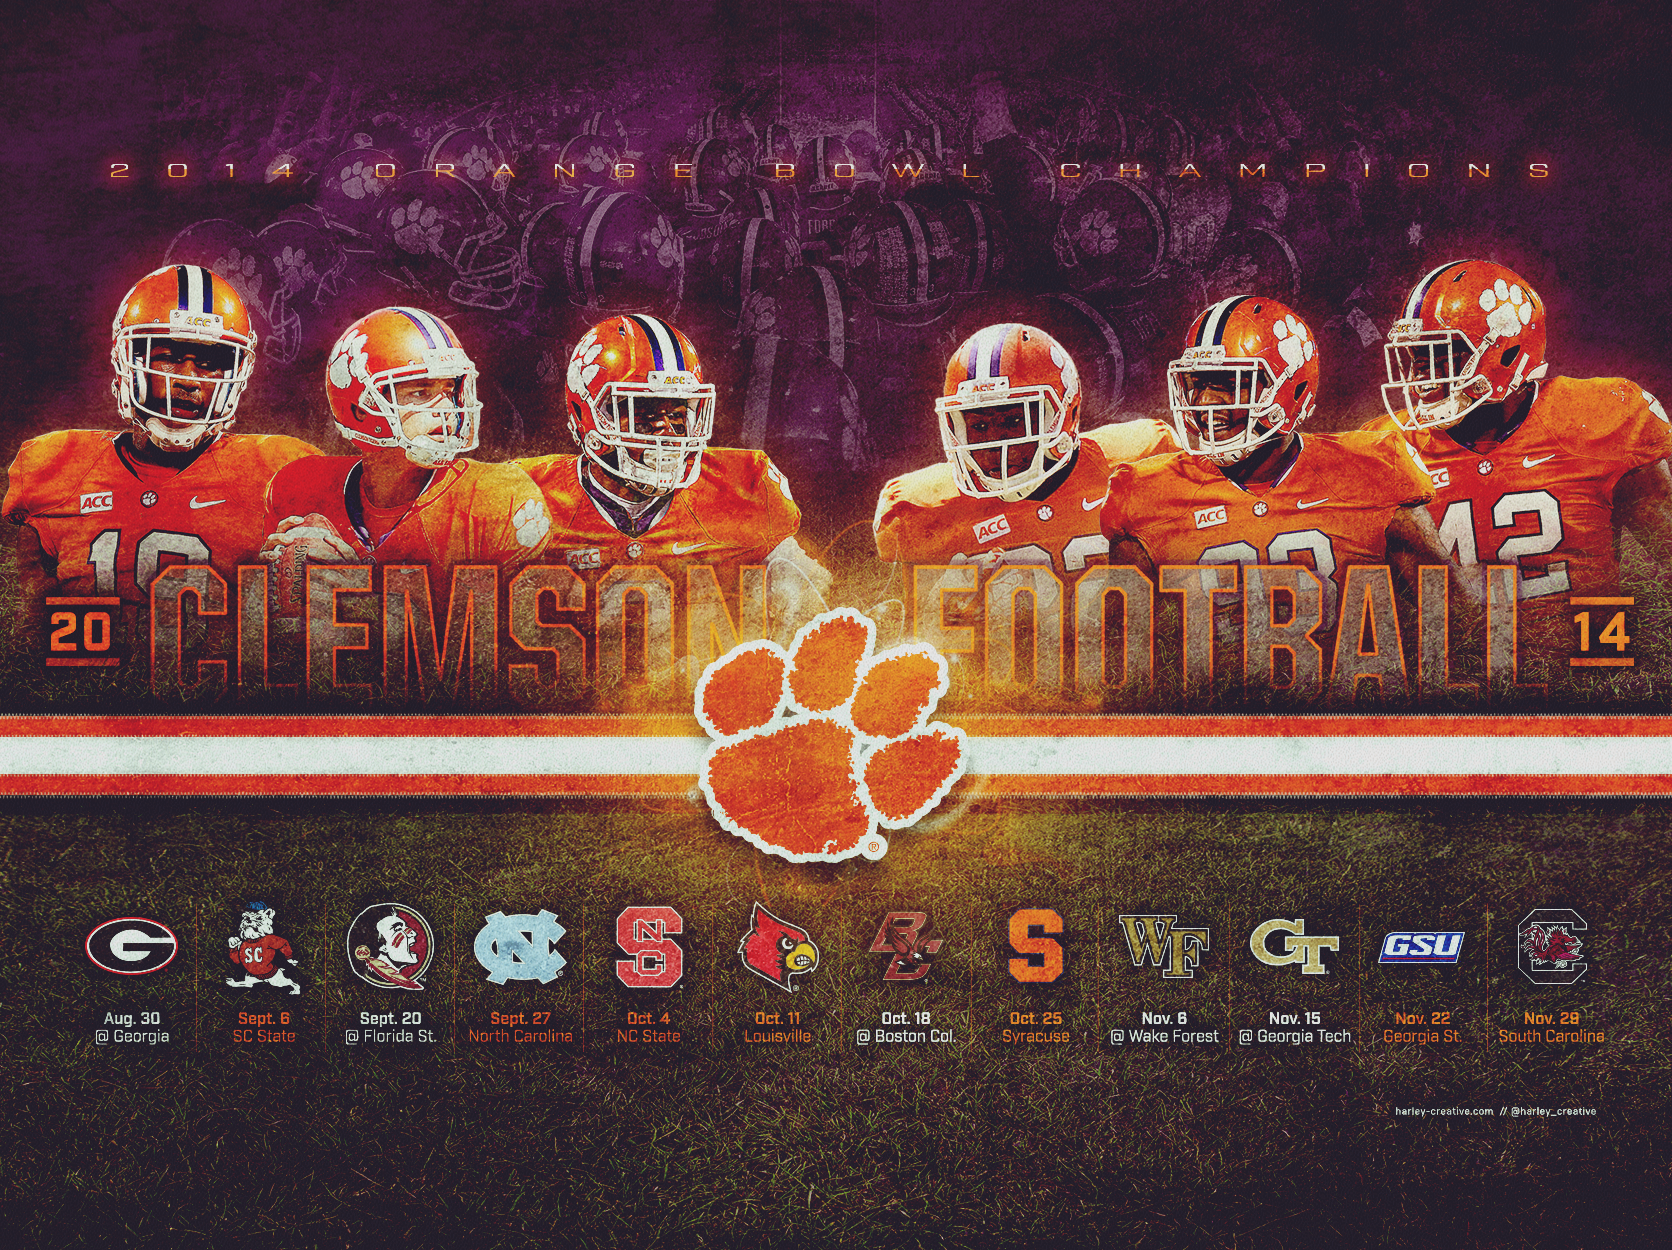 Football Wallpaper Clemson Tigers Boston College Pictures 1672x1250